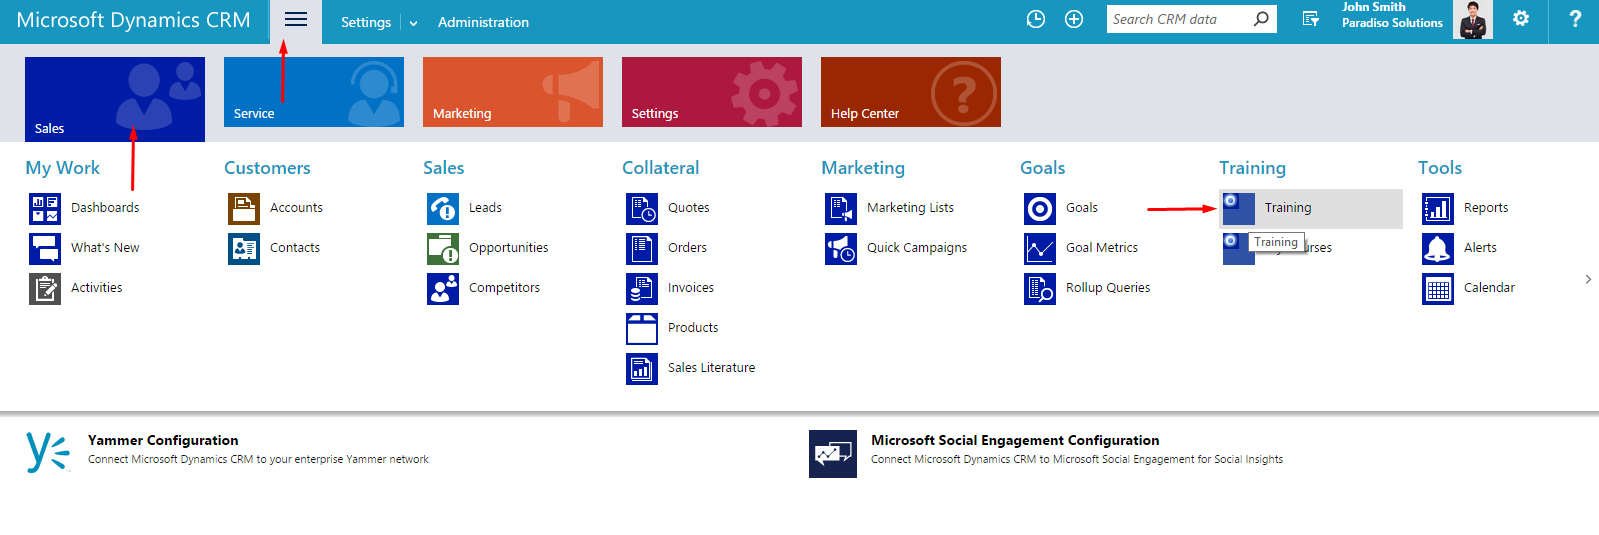 How To Make Sure Microsoft Dynamics Crm Aligns With Your